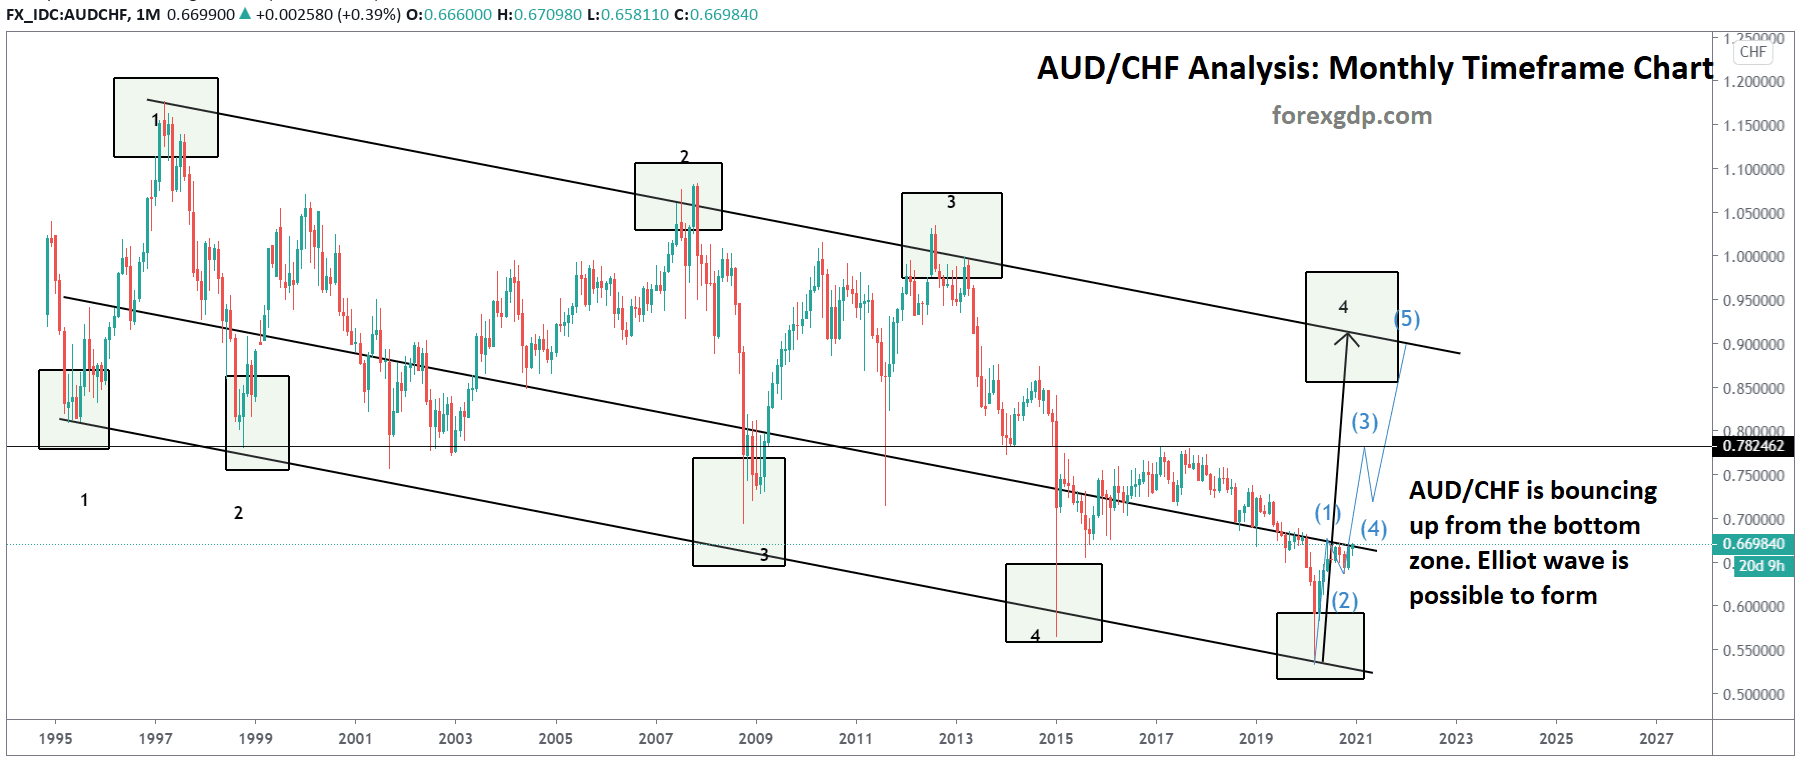 audchf monthly timeframe chart shows elliot wave and channel analysis